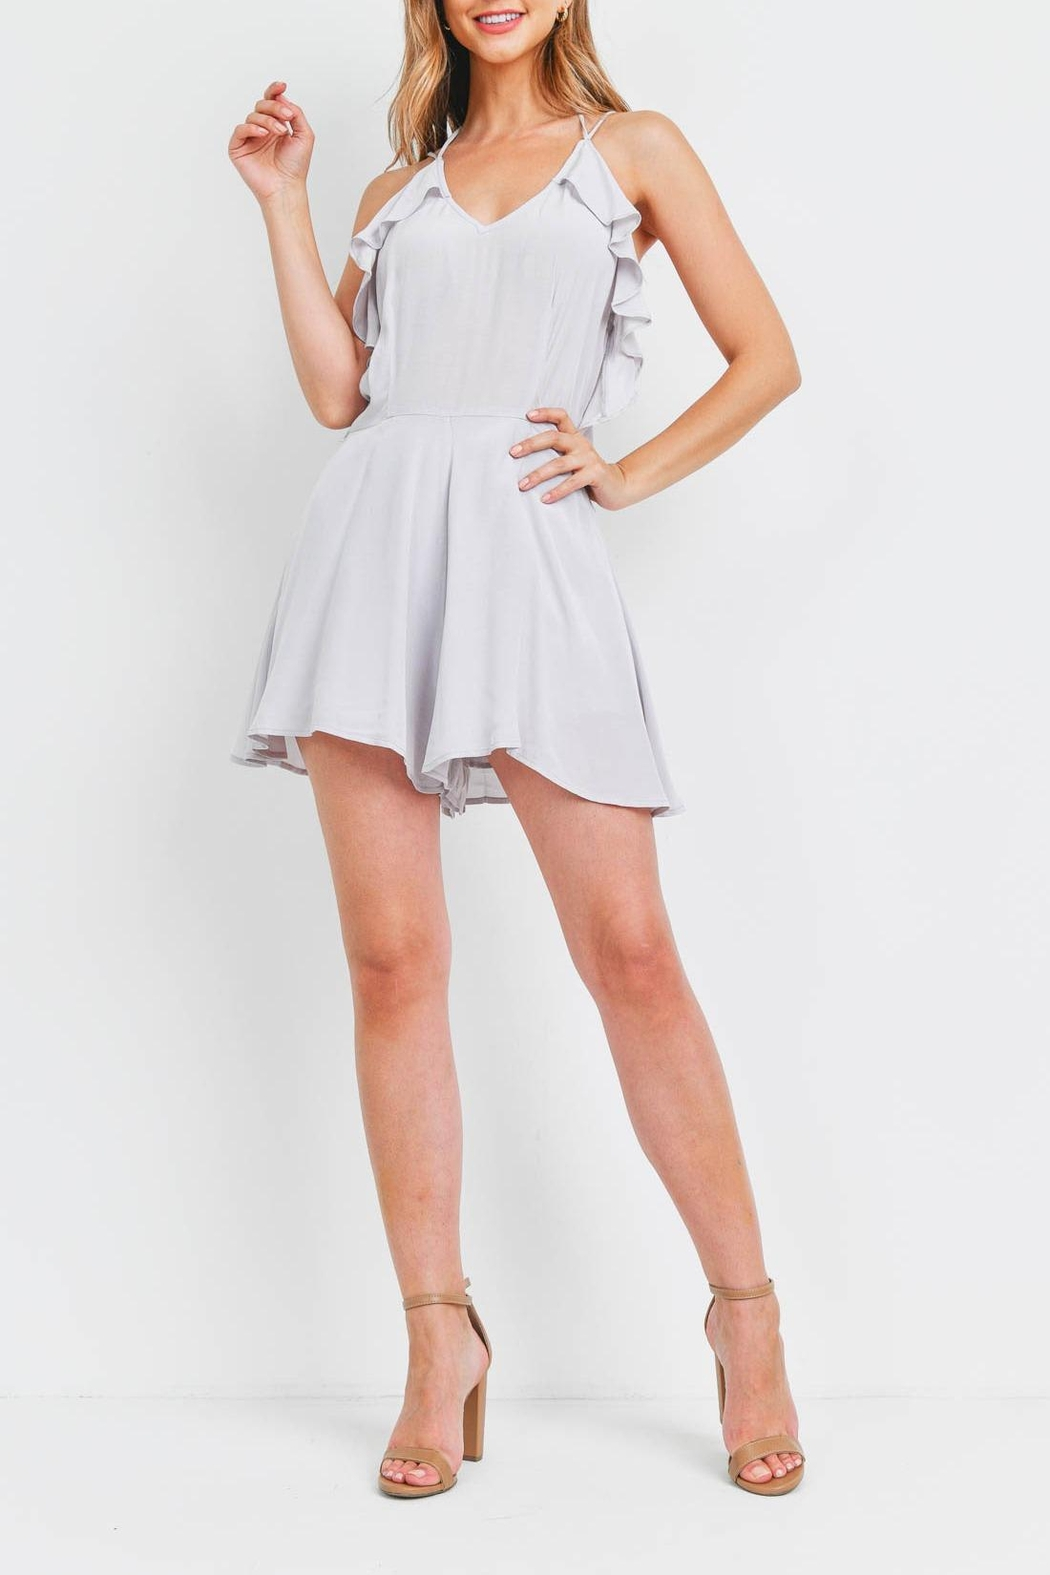 Riah Fashion Silver Romper - Side Cropped Image